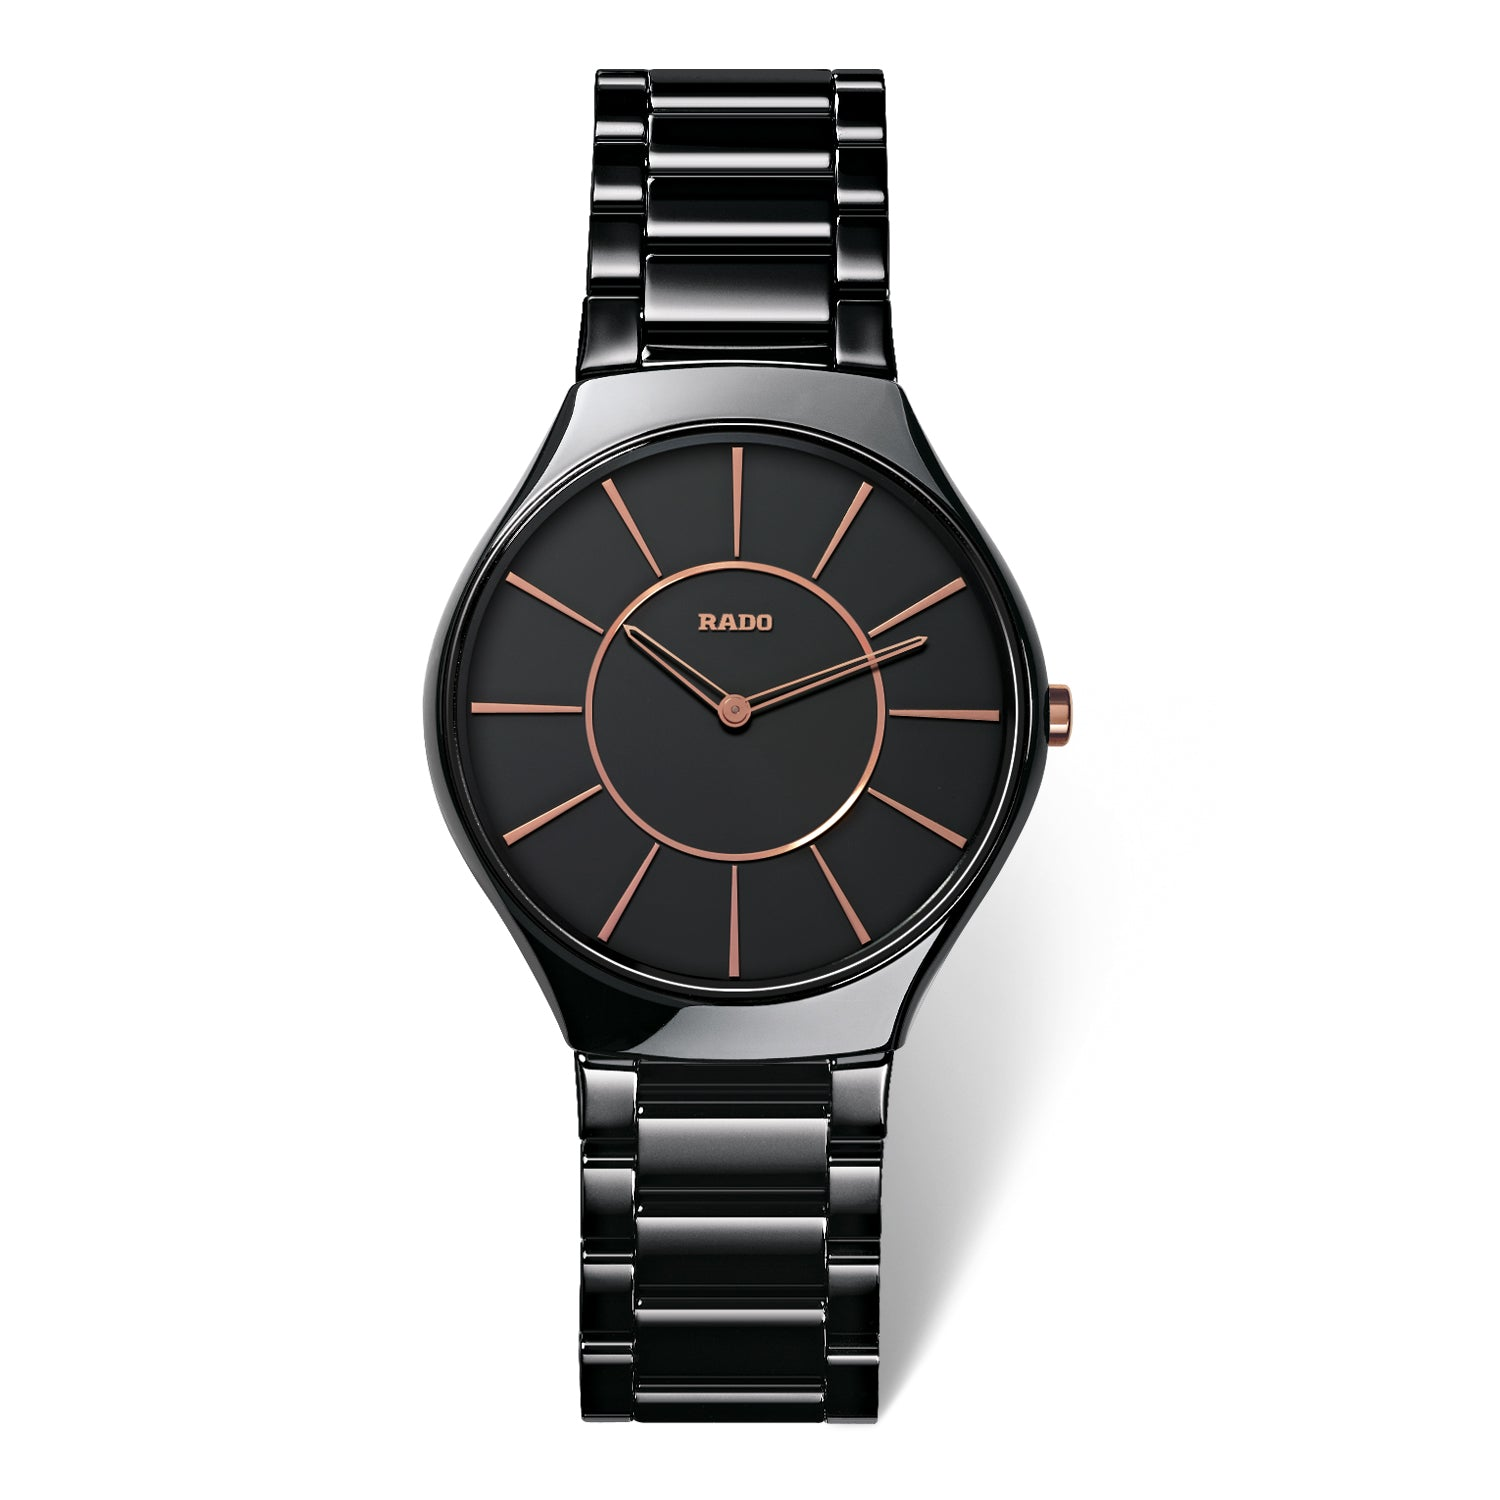 Rado True Thinline L watch, Black High-Tech Ceramic with Gold markers